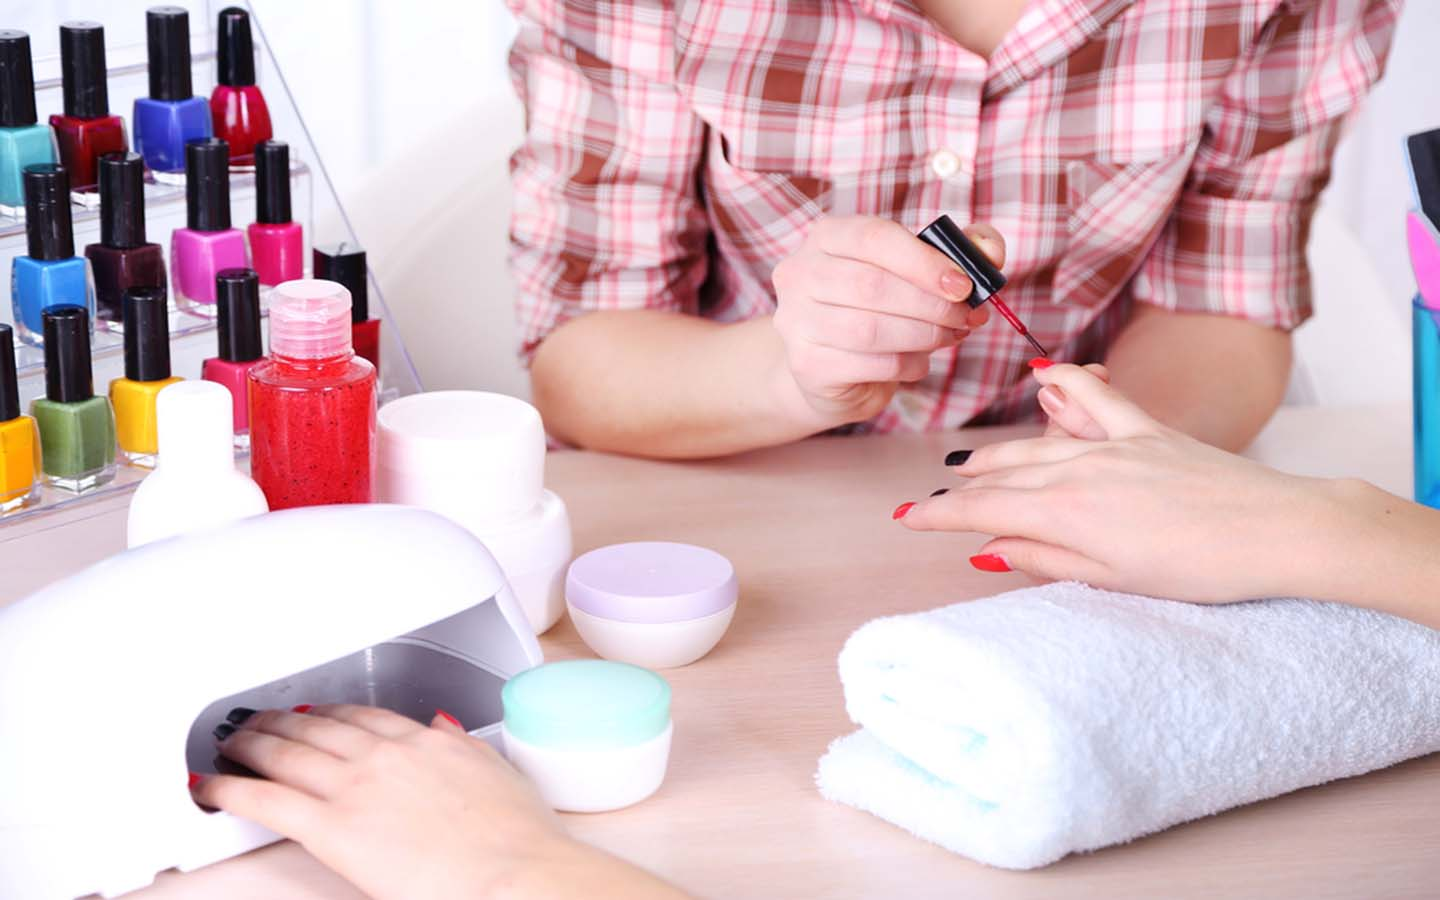 Nailcare services being given at a salon in Dubai